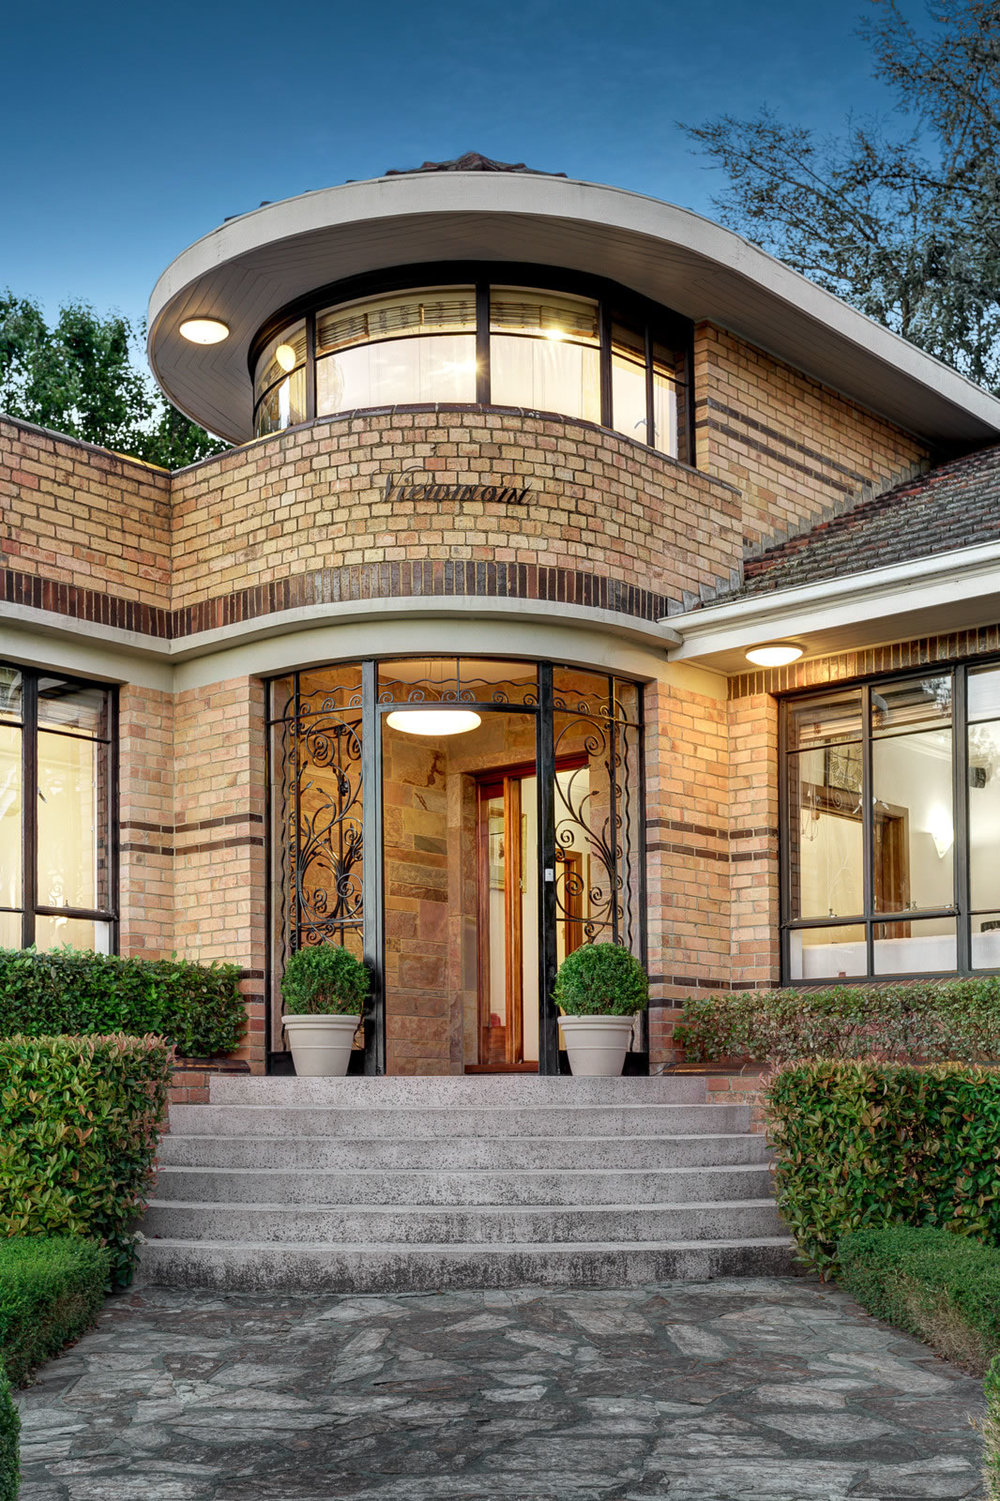 Historical architectural style the art deco waterfall for Architectural homes